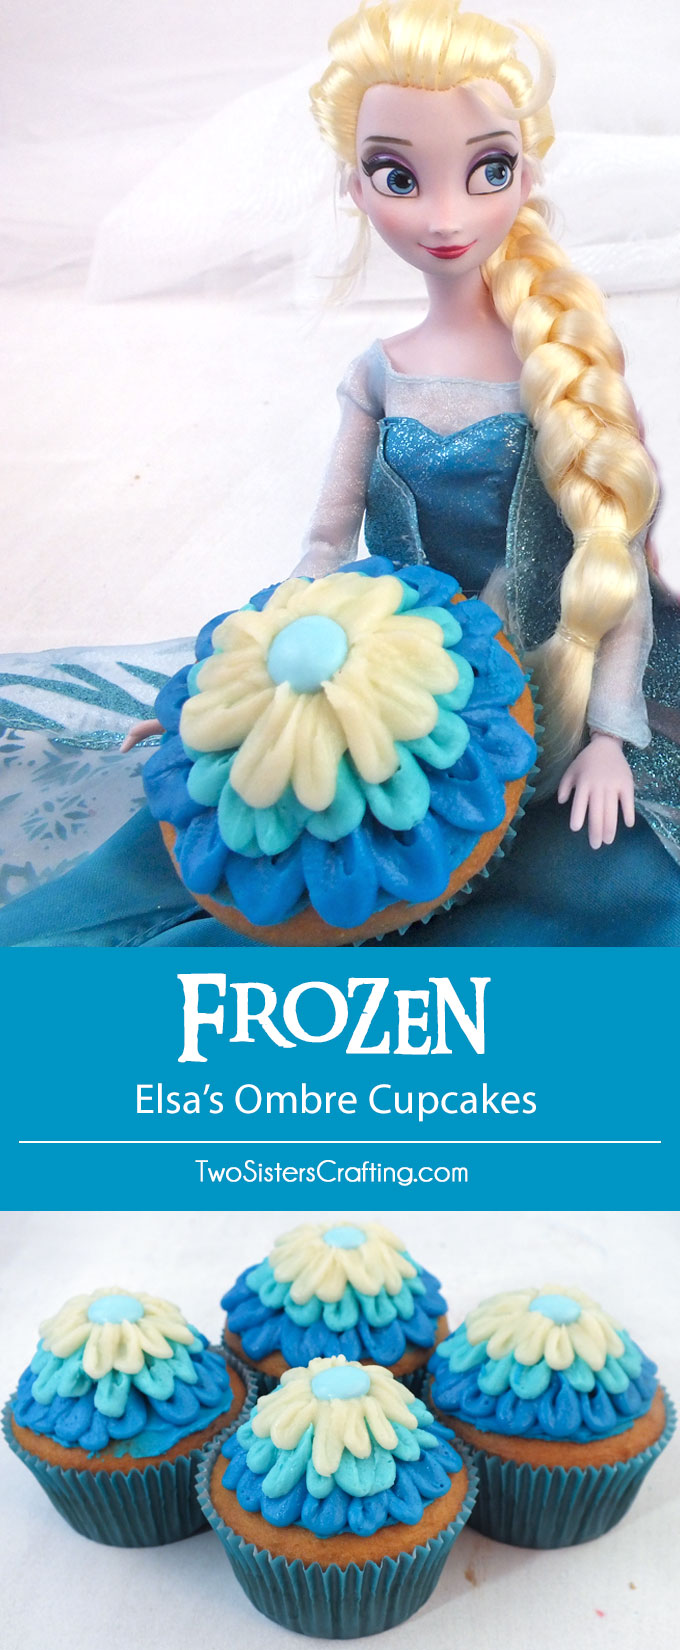 Everyone at your Frozen Birthday Party will love these Elsa's Ombre Cupcakes. So pretty, so delicious and easier to make than you might think. These beautiful Frozen Cupcakes will look lovely on your Frozen Dessert Table and we have all the directions you'll need to create them. Follow us for more great Frozen Party Ideas.